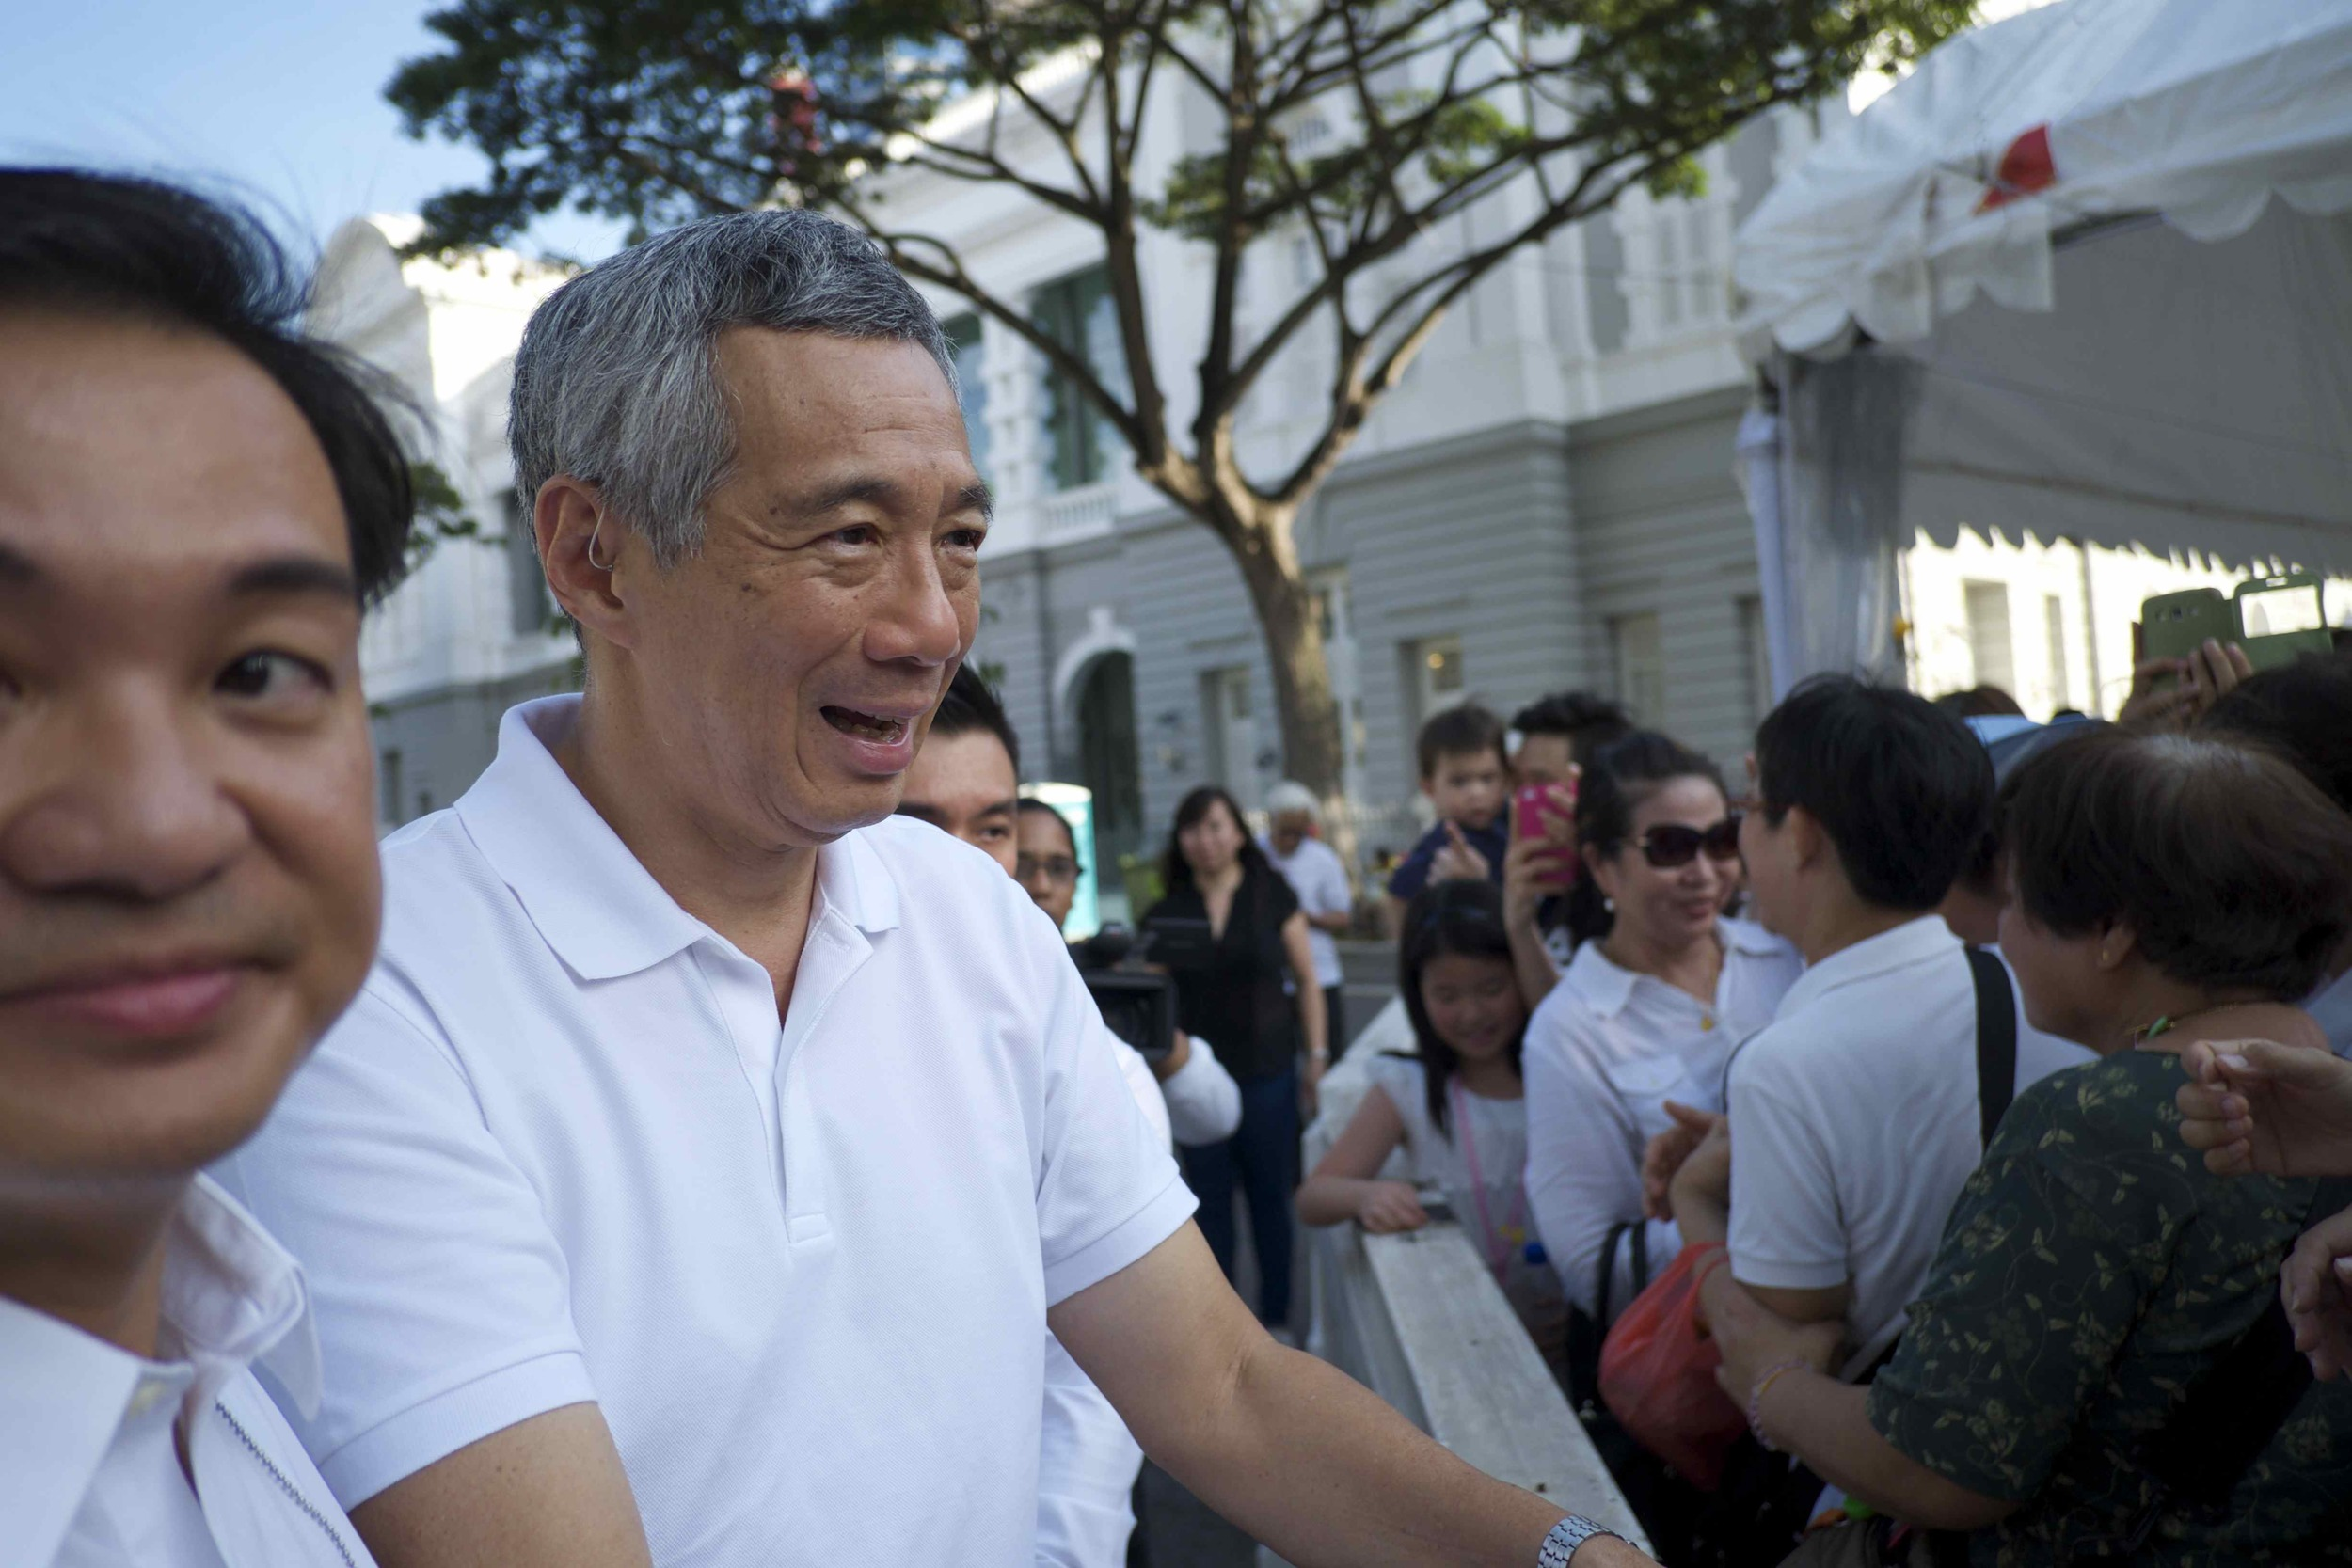 Lee Hsien Loong, current Singapore prime minister and Lee Kuan Yew's son, greet mourners waiting outside the Parliament House to pay their respects to the former PM. (Credit: Dene-Hern Chen)